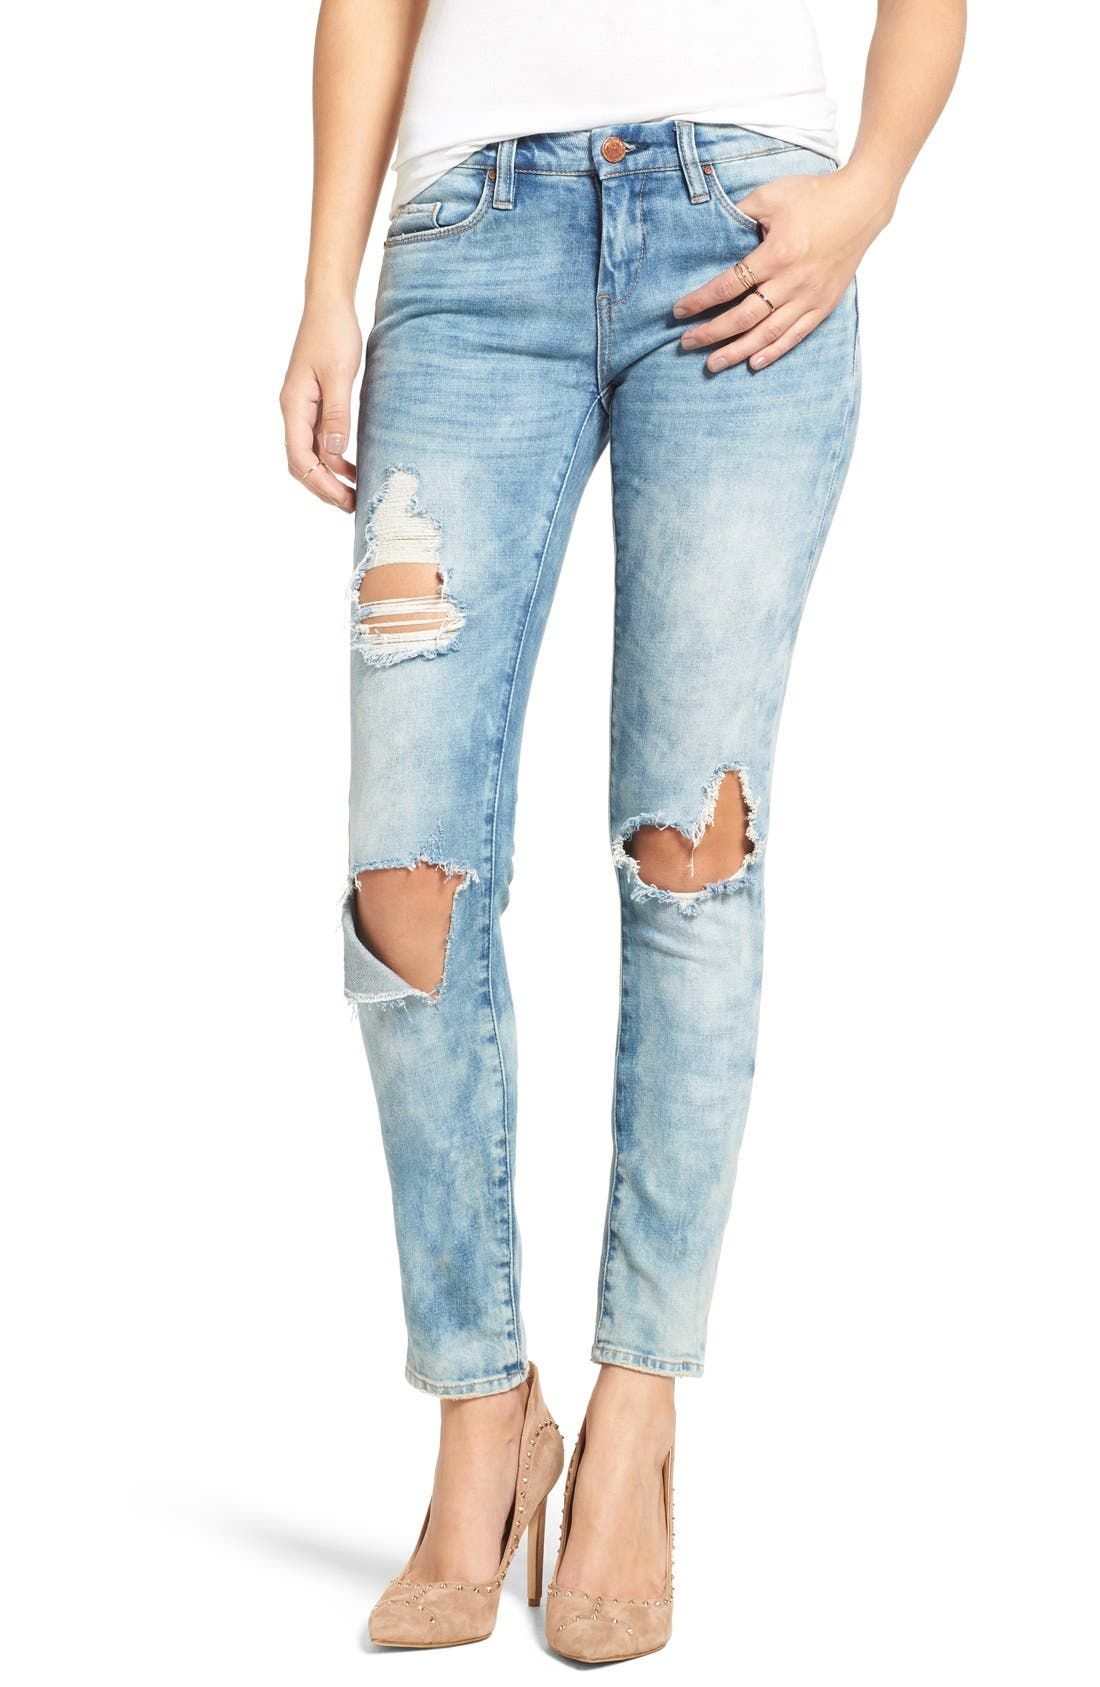 BLANKNYC, Good Vibes Distressed Skinny Jeans, Main thumbnail 1, color, 420